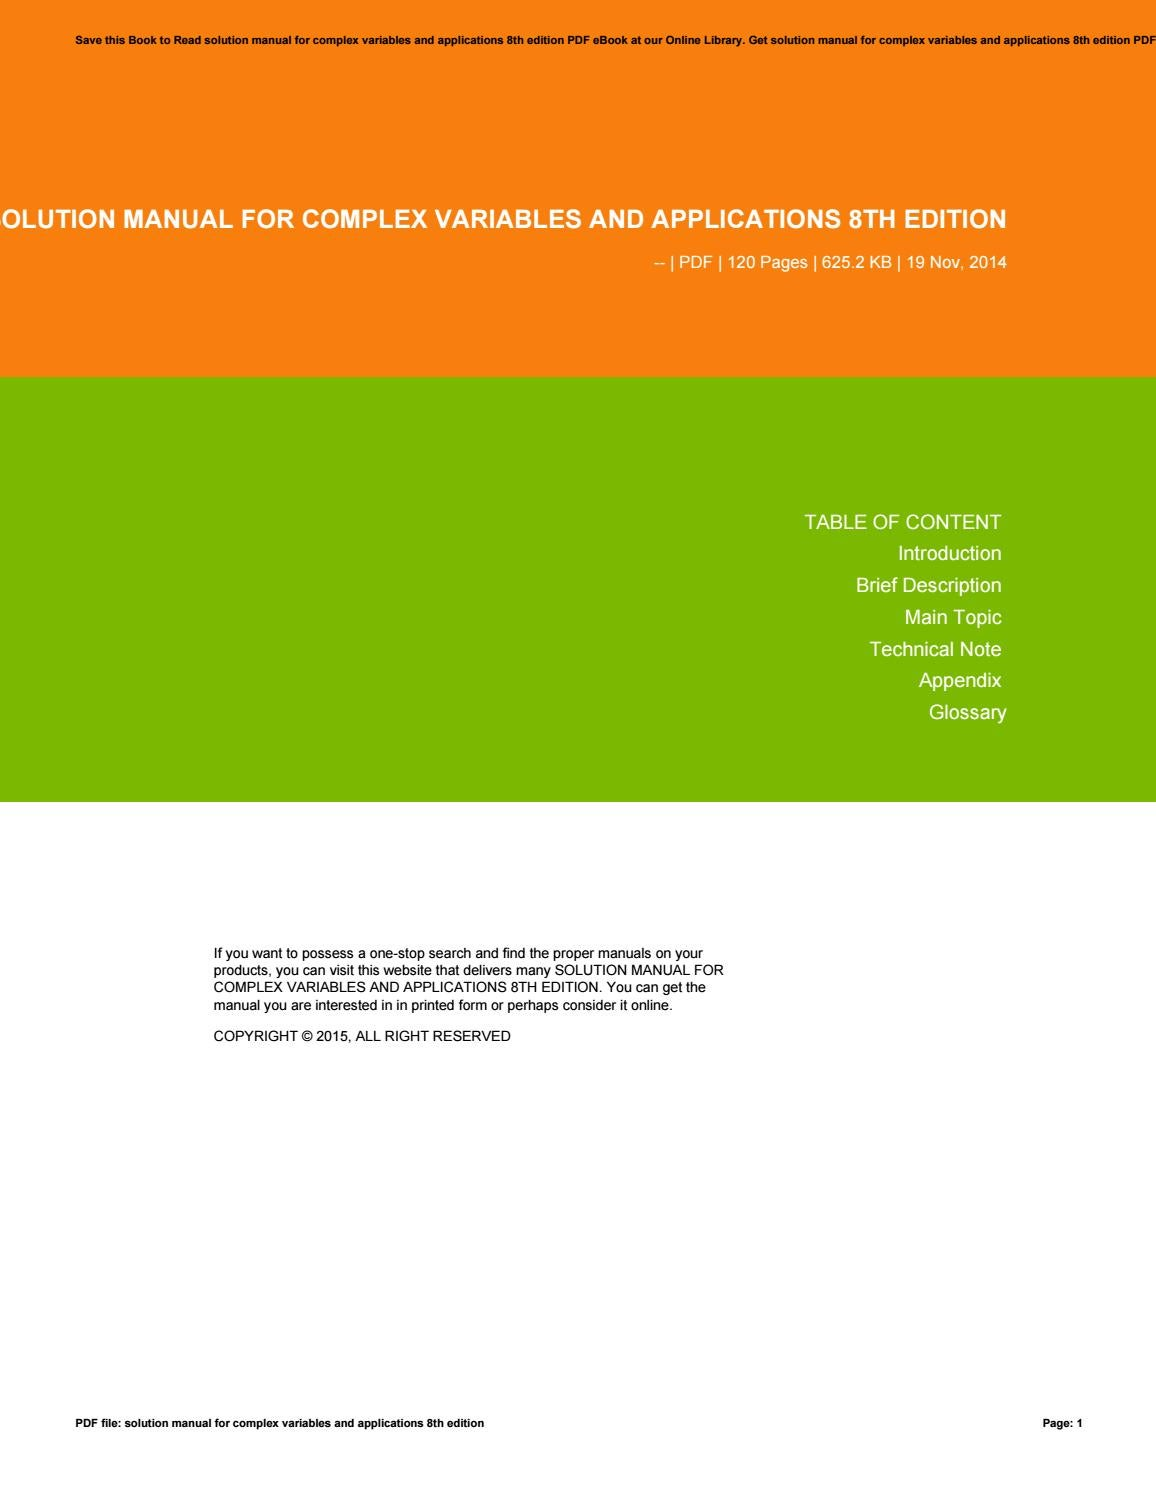 Solution manual for complex variables and applications 8th edition by  AnnalisaDicarlo2591 - issuu